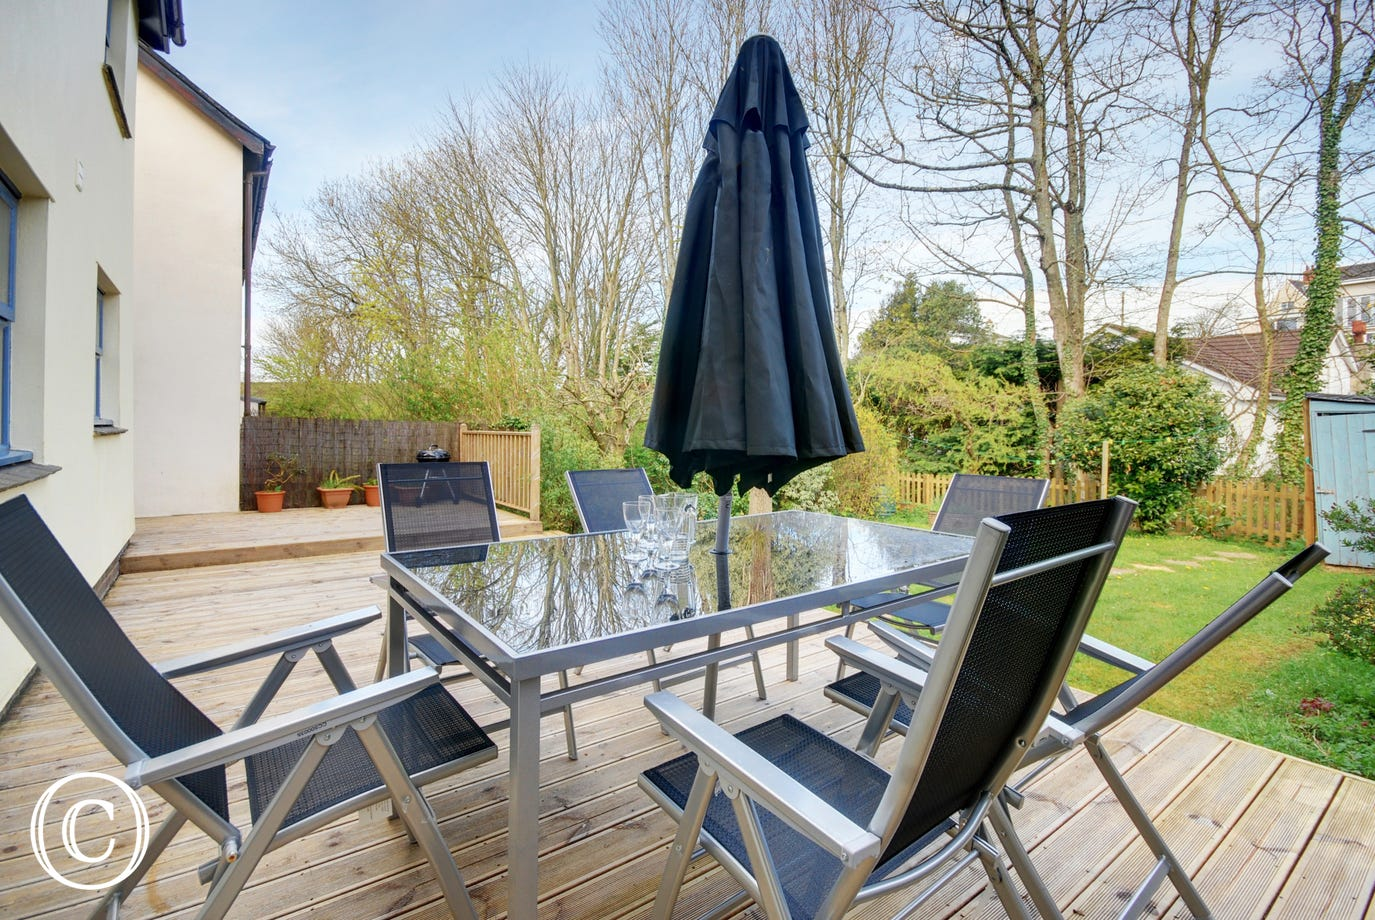 Fabulous decked patio area, just perfect for barbecues and leisurely al fresco meals